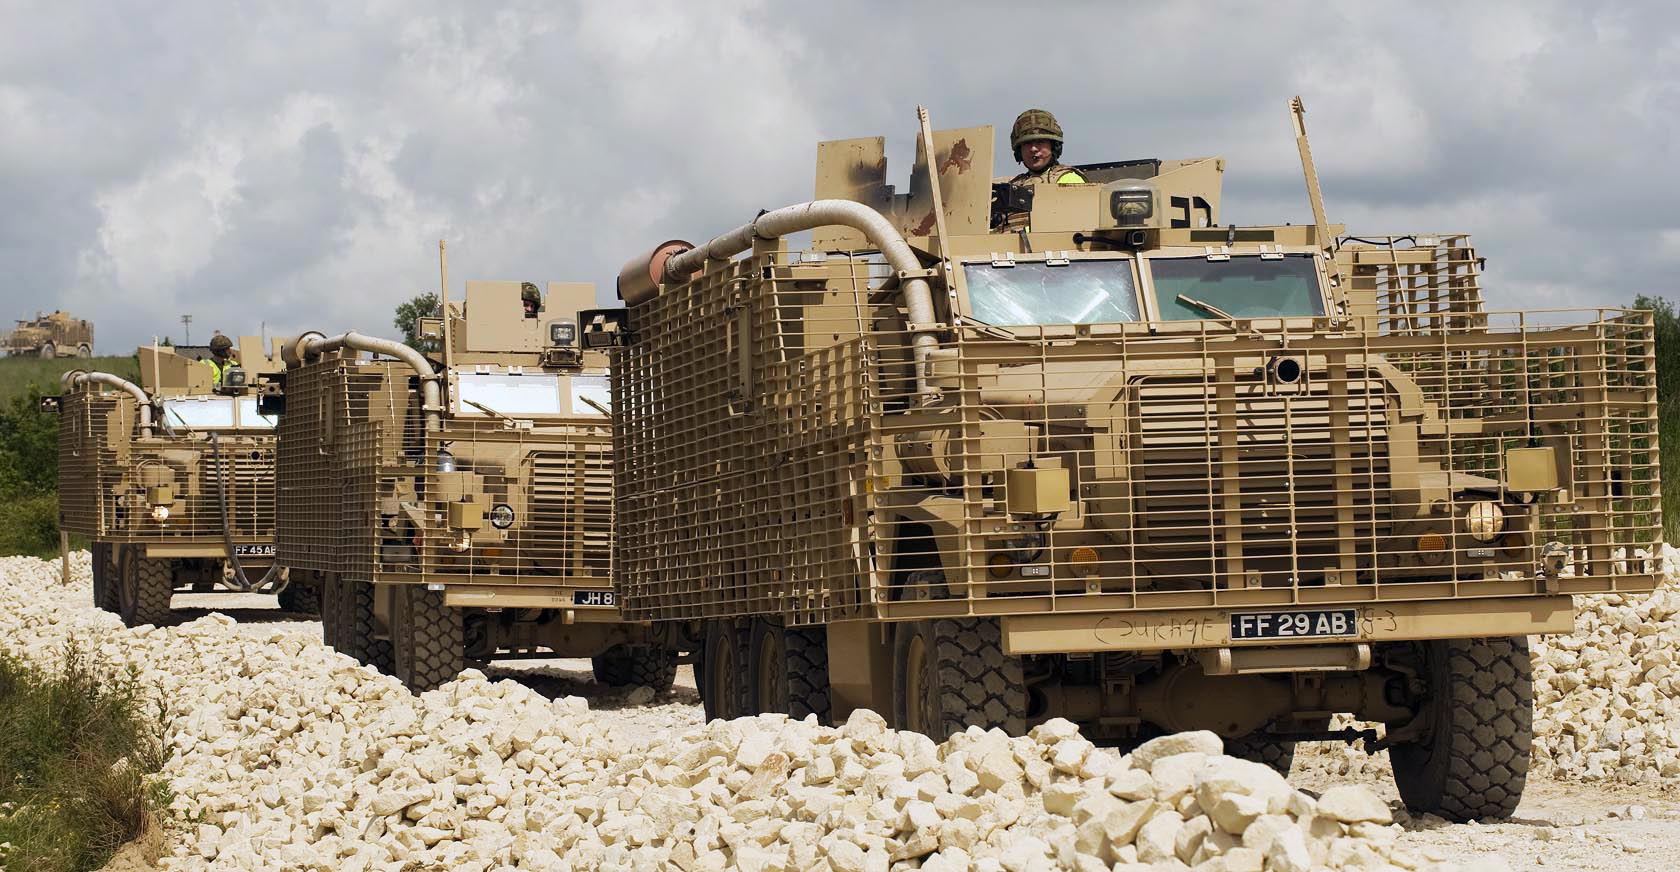 File:Mastiff and Ridgback Heavily Armoured Patrol Vehicles in ...